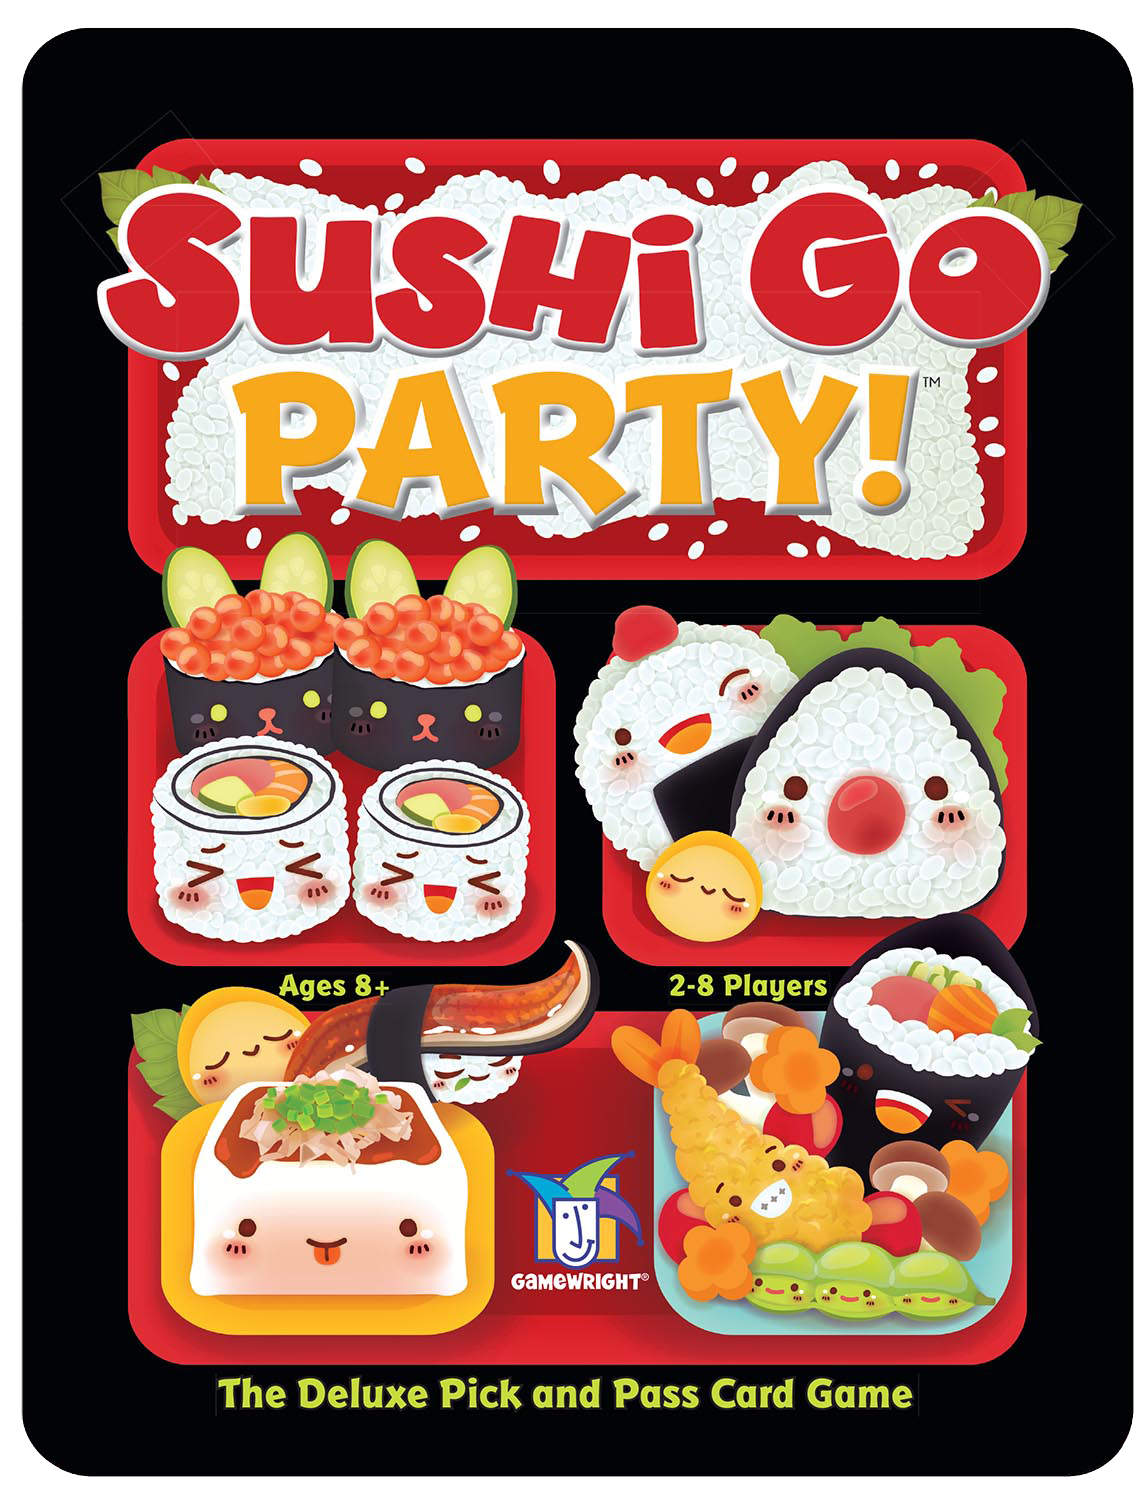 Cuisine Gameplay Switch Up The Gameplay Sushi Go Party Deluxe Lets You Choose